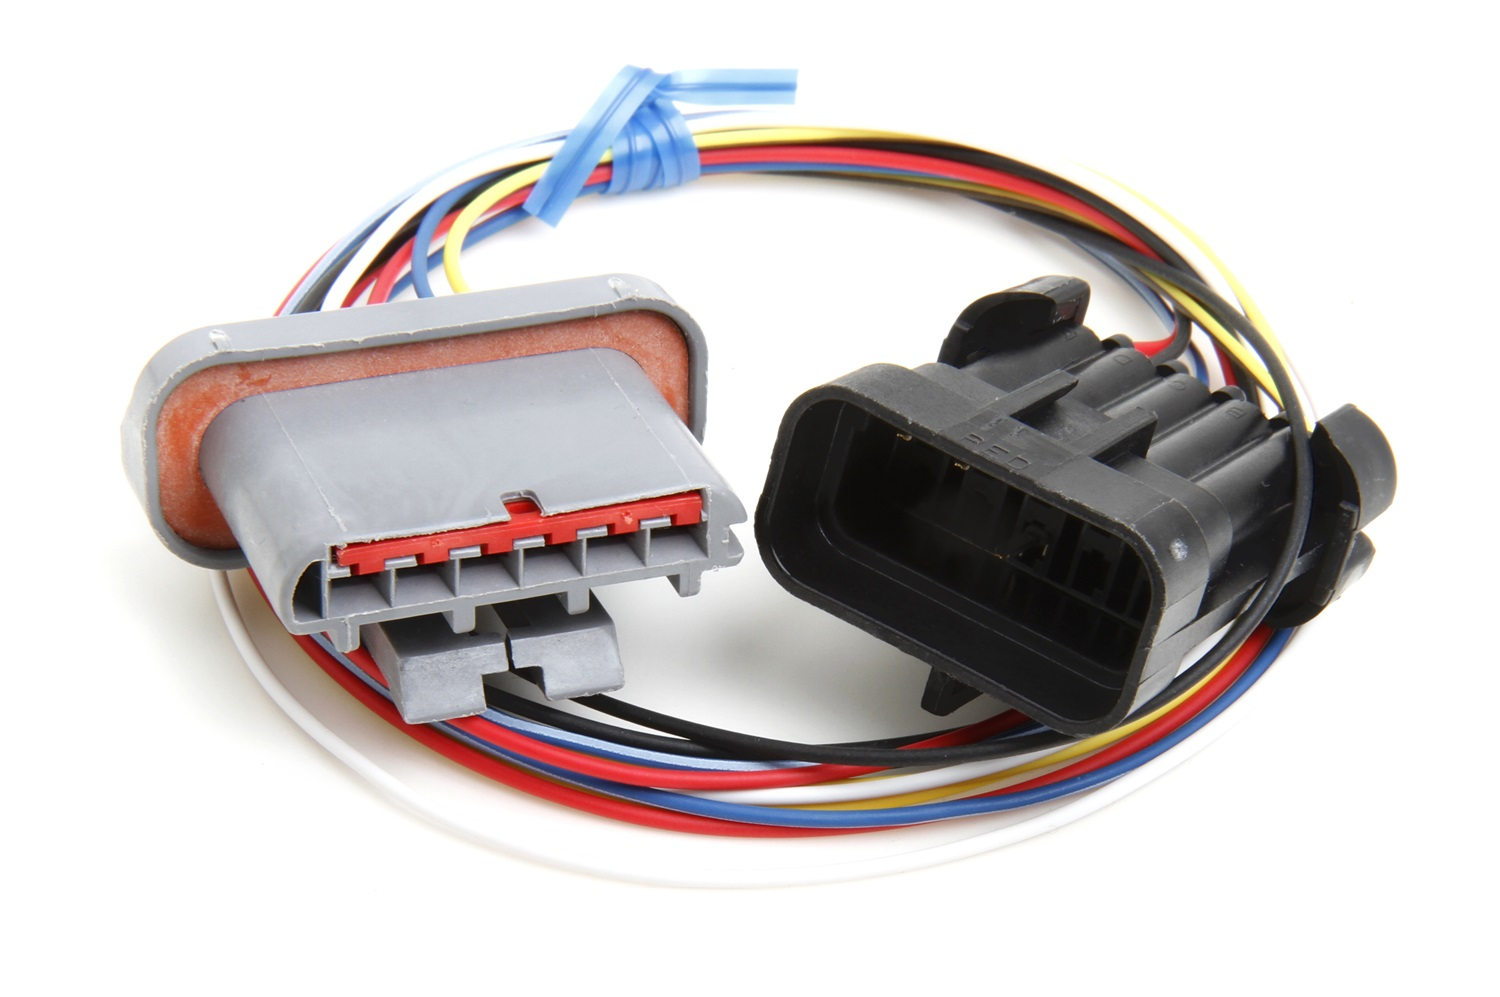 Wrg 3746 Painless Wiring Efi Engine Harnesses Free Shipping Sdway 10102 Instructions Holley Performance 558 305 Tfi Ignition Harness